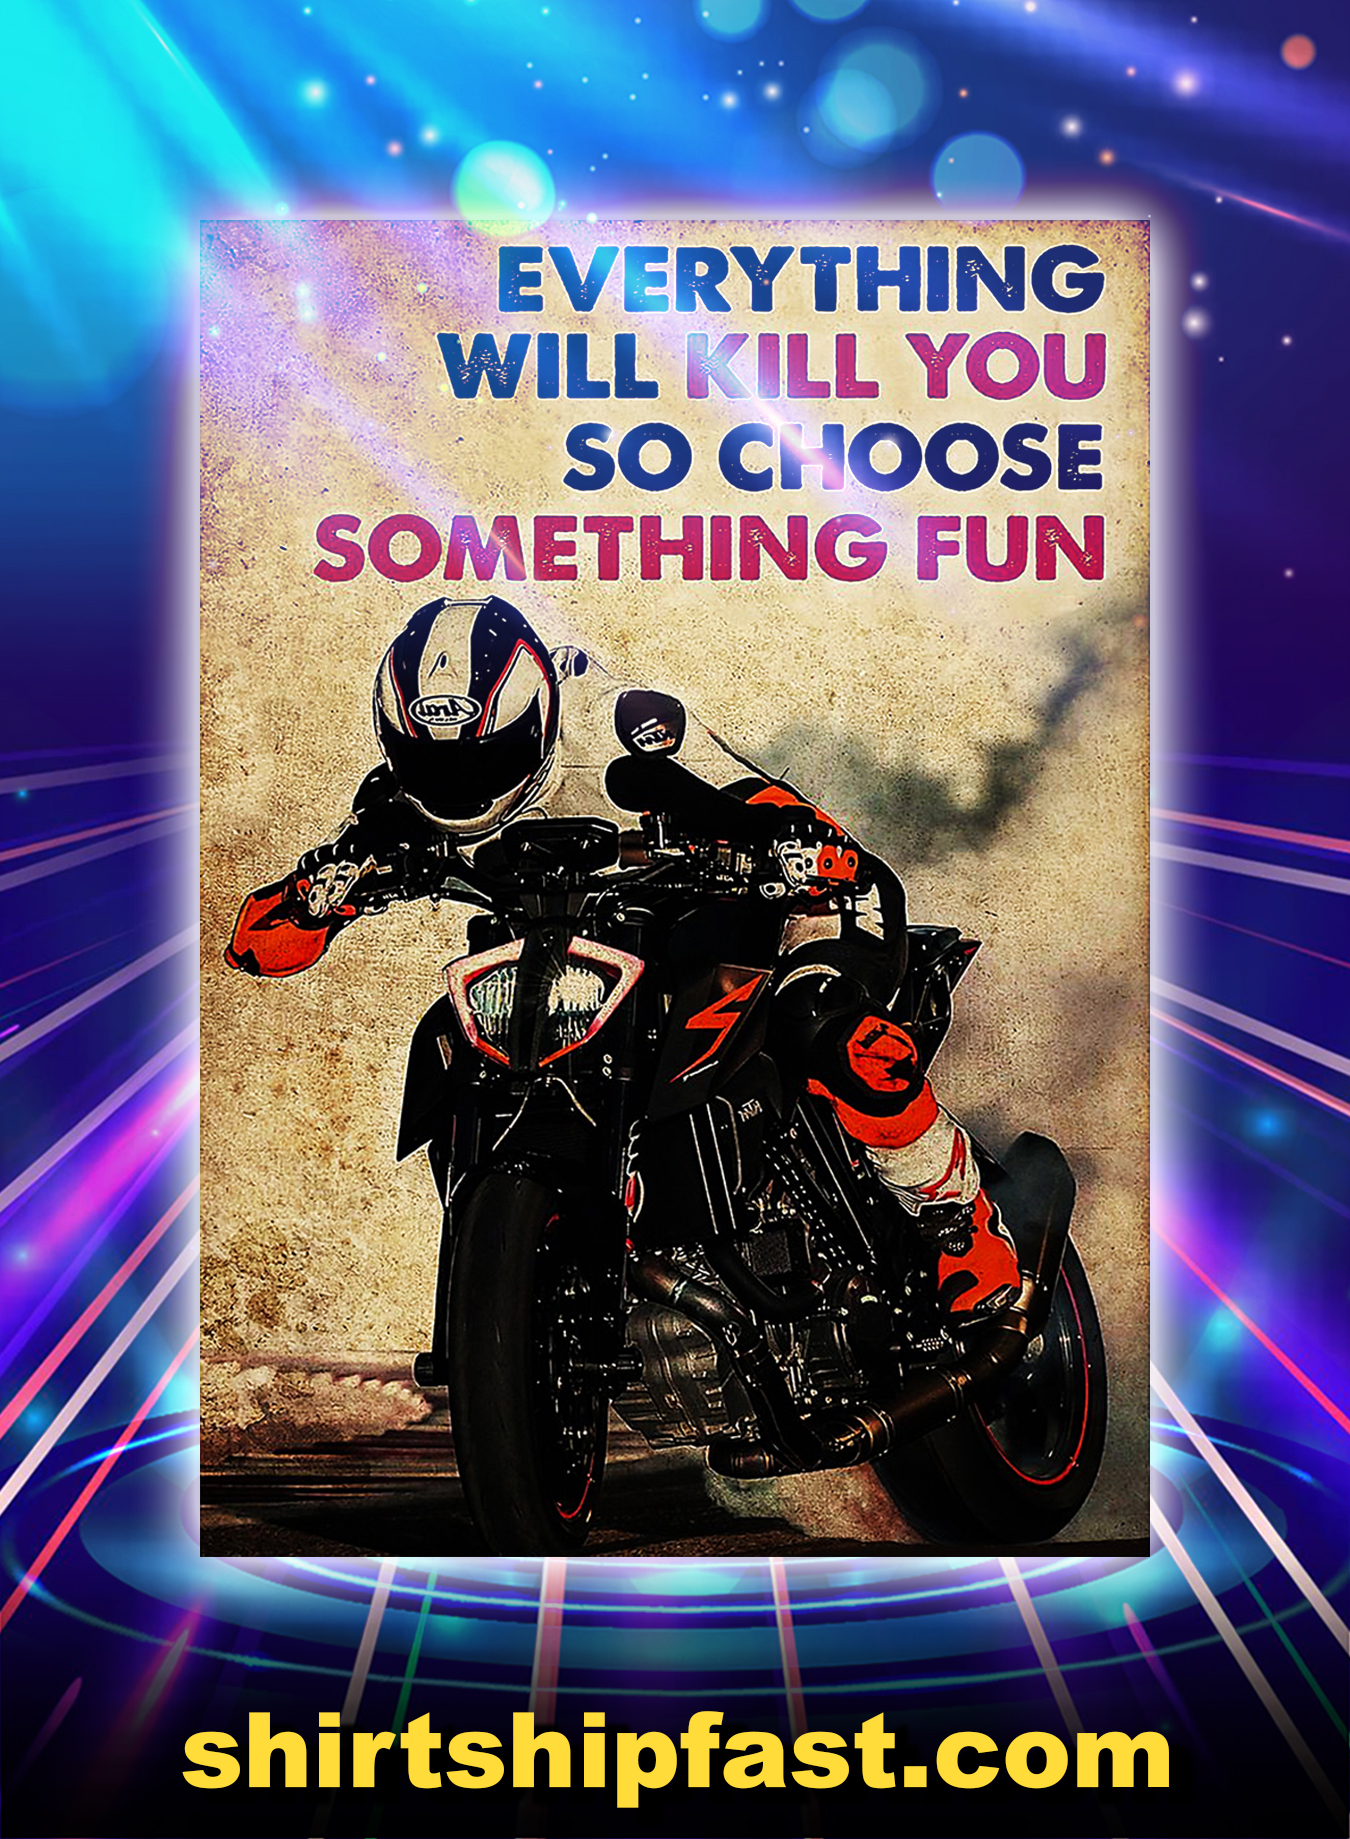 Motor racer everything will kill you so choose something fun poster - A2